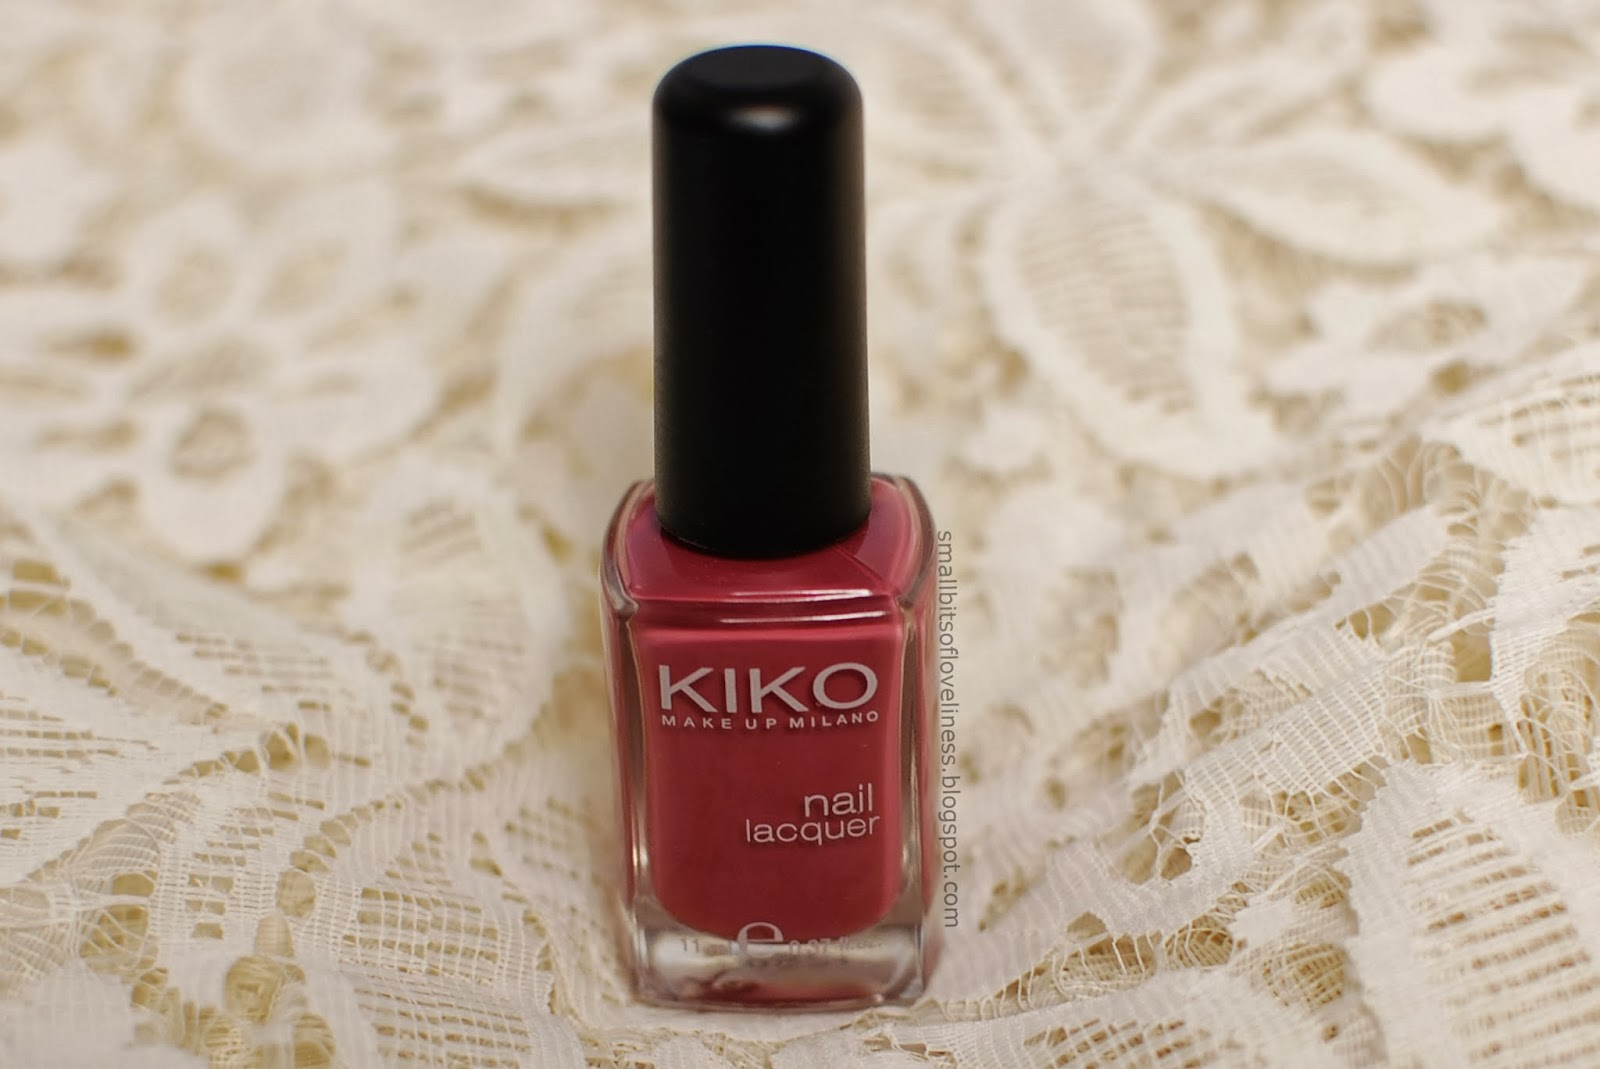 Kiko Dark Antique Pink